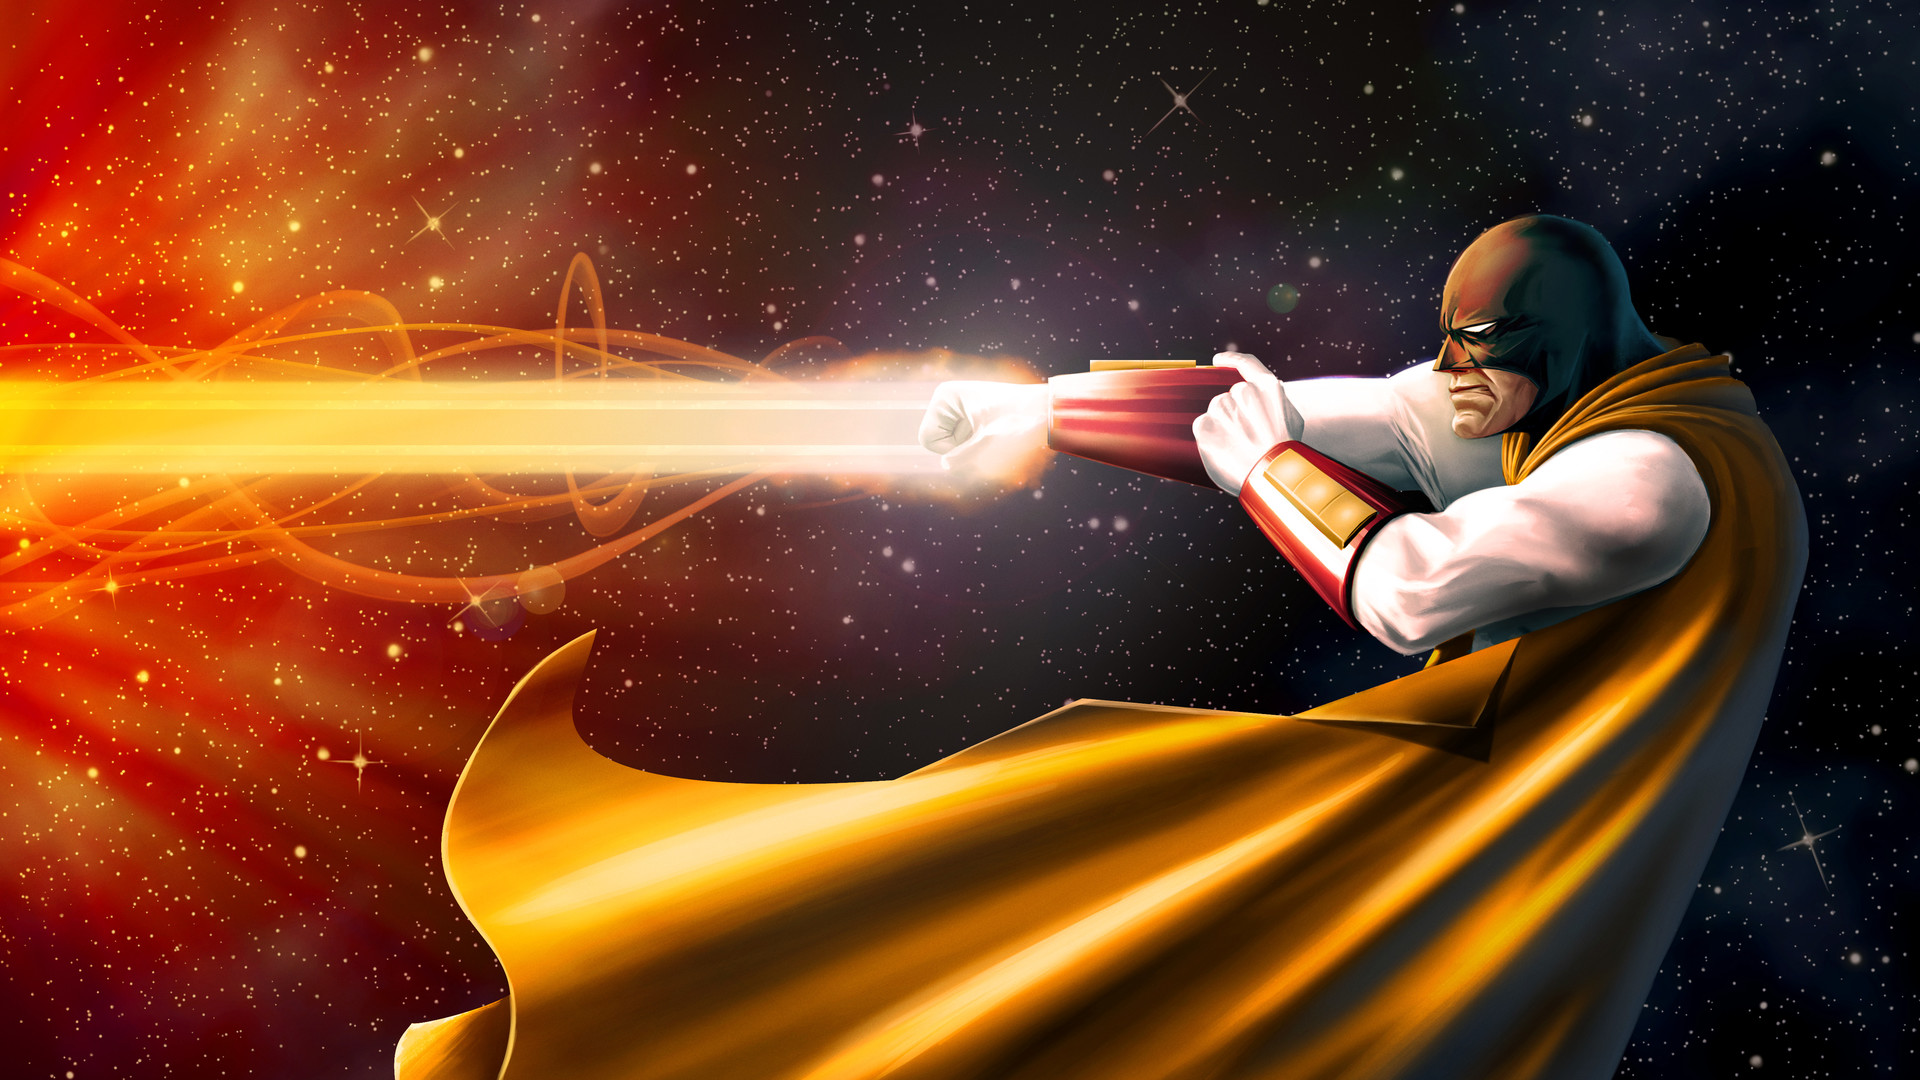 Space ghost wallpapers 26304 9264938